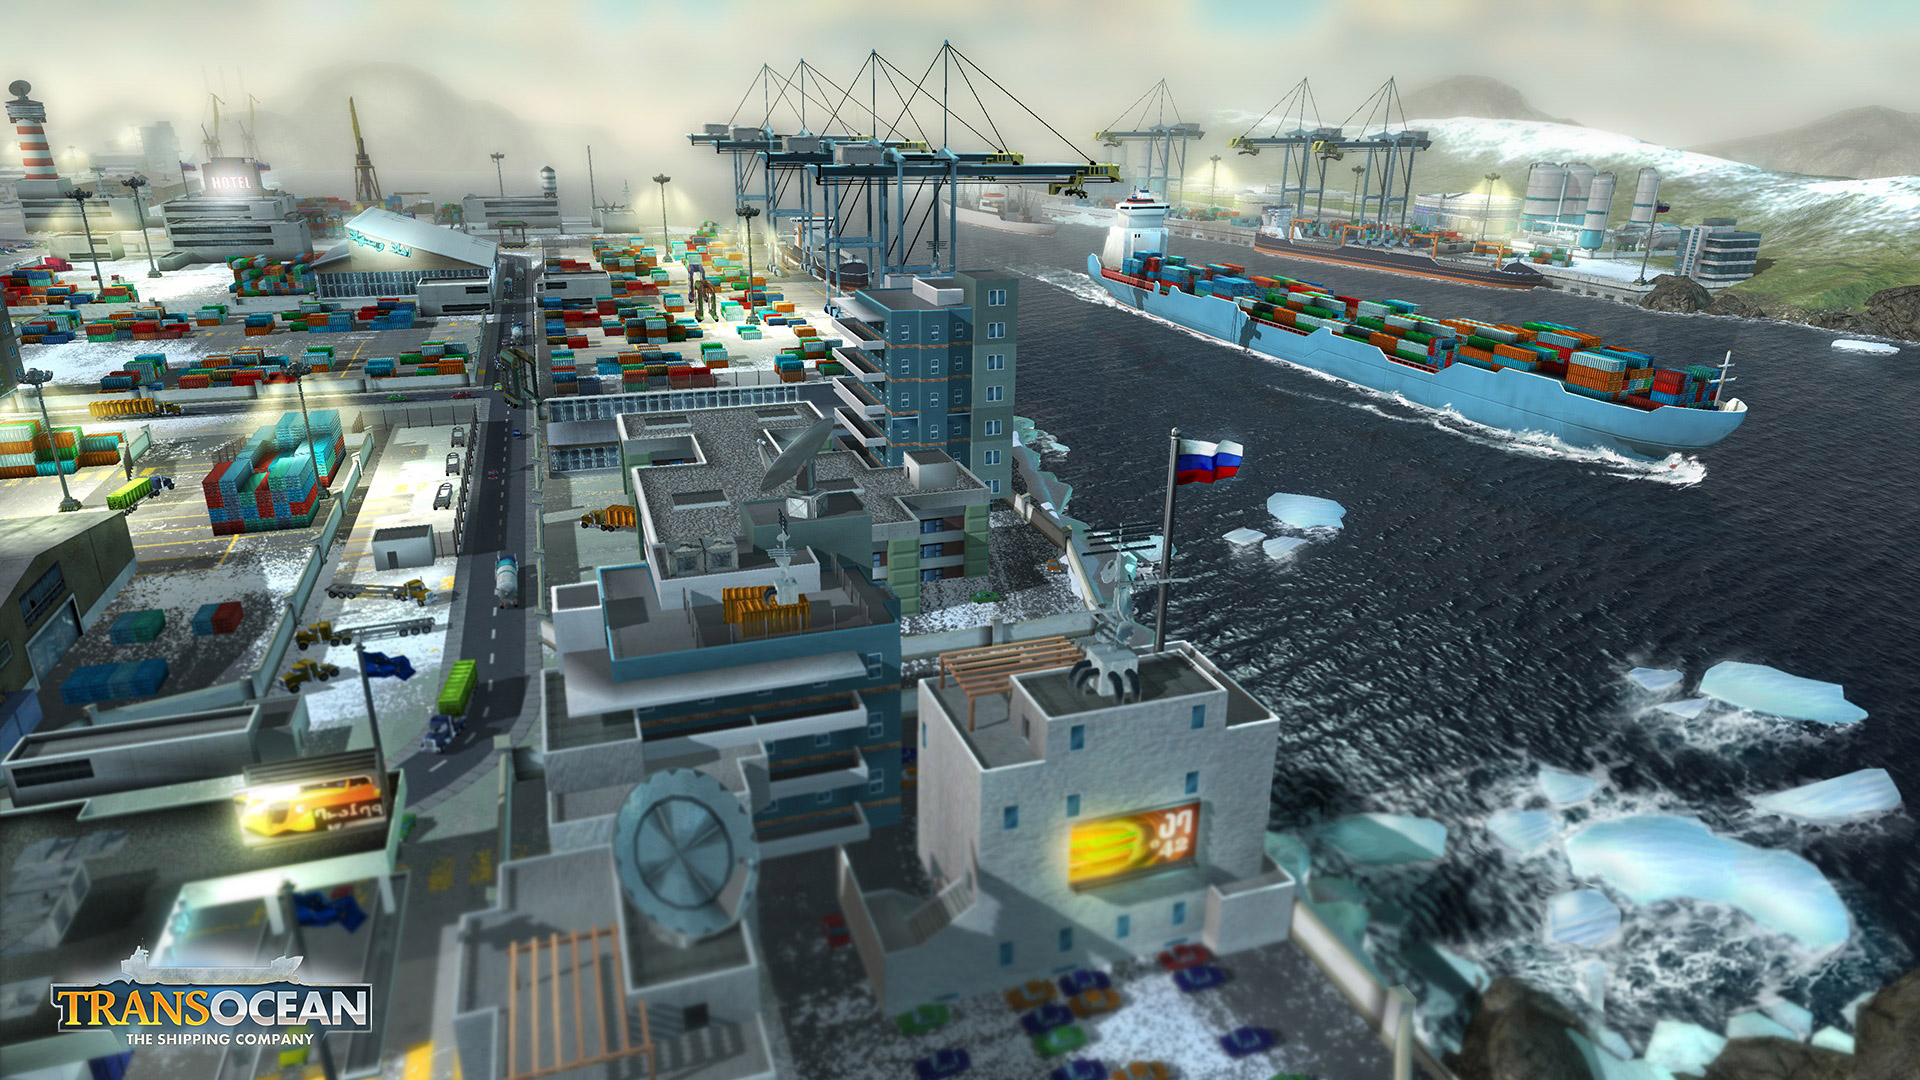 TransOcean: The Shipping Company - Screenshot 06